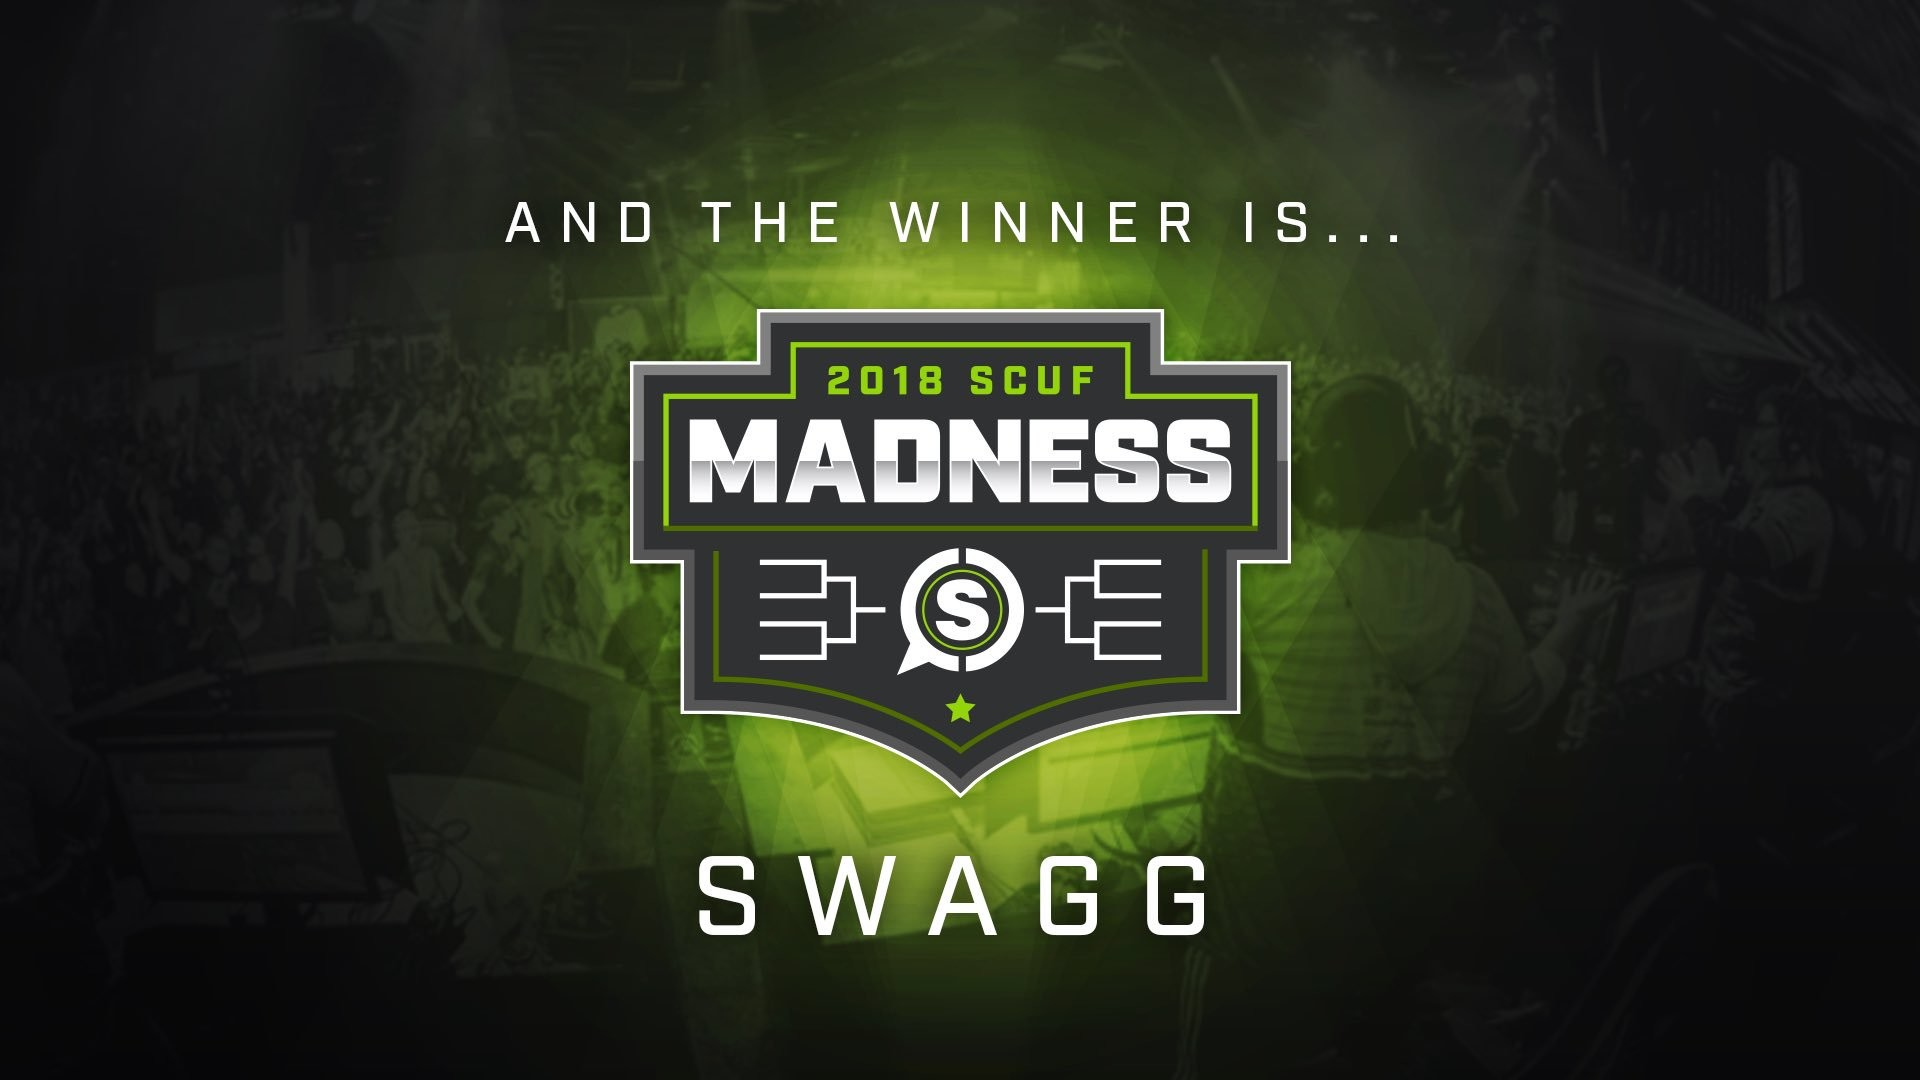 "1920x1080 Scuf Gaming on Twitter: ""The Winner of the 2018 SCUF Madness Tournament is  @SwaggXBL! 🎮🔥 Personalized SCUF design inbound 🚀… """